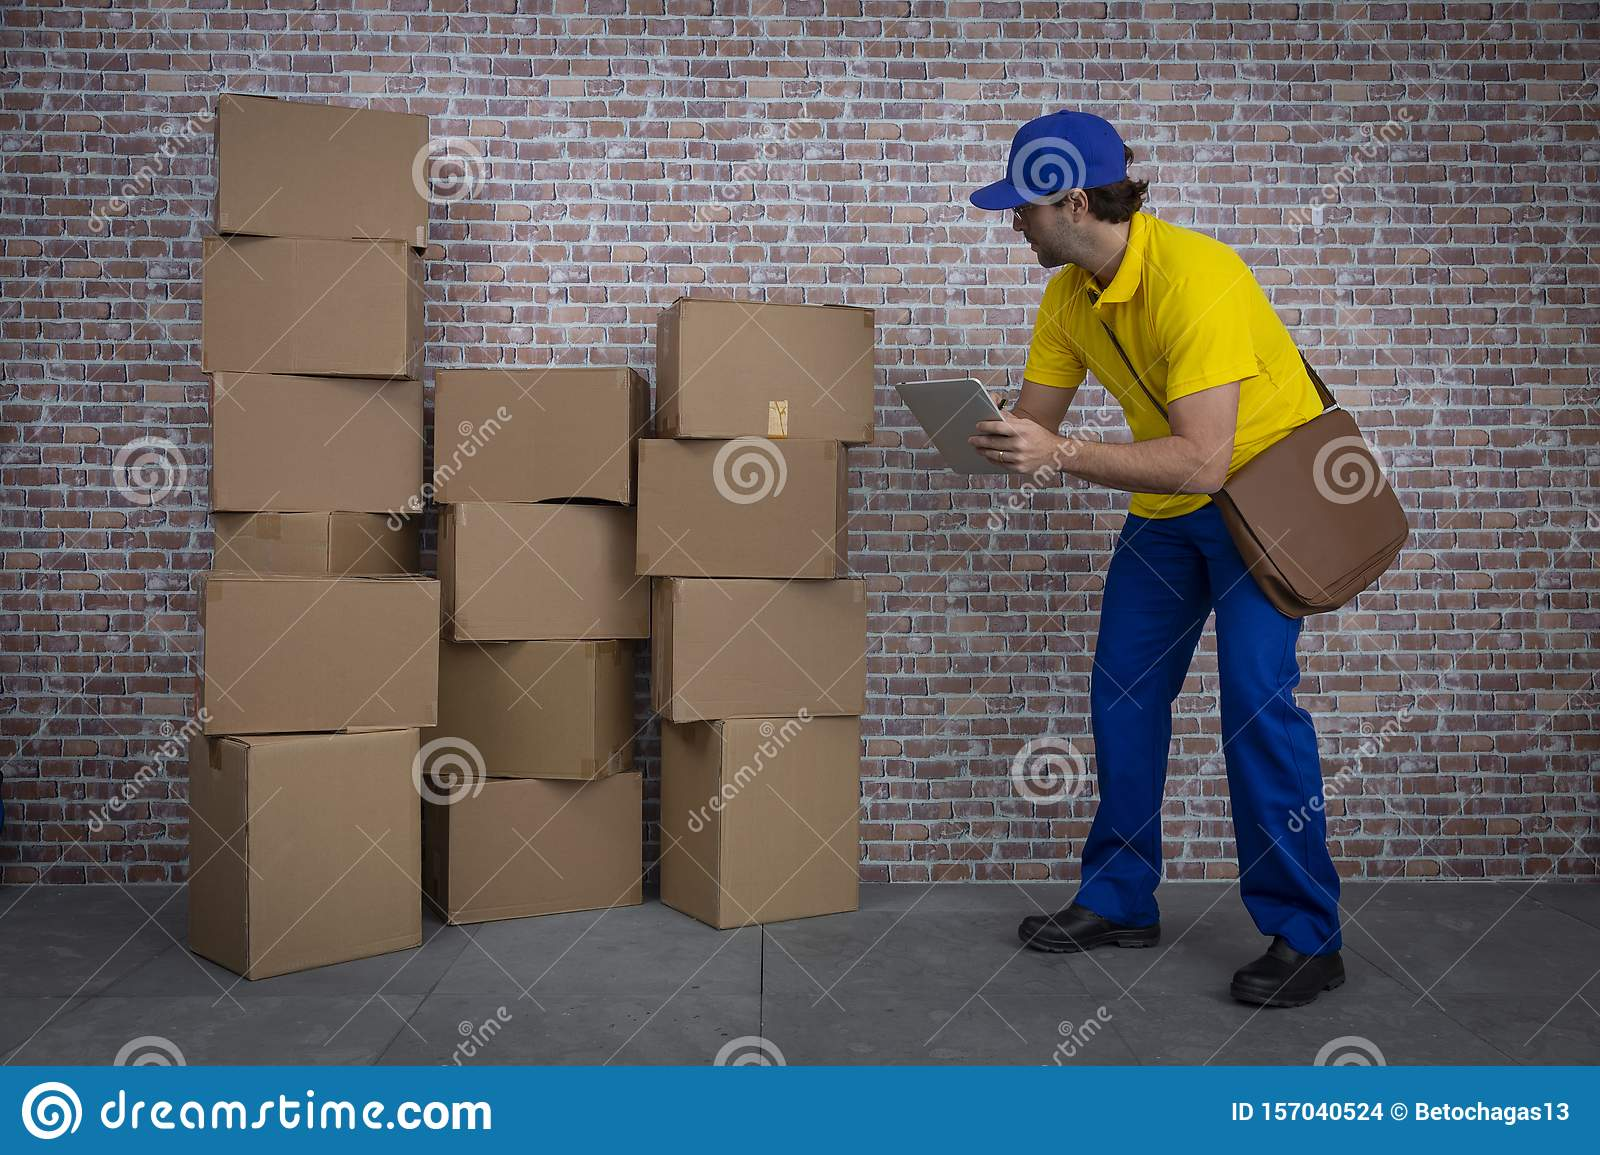 Brazilian mailman checking a lot of packages